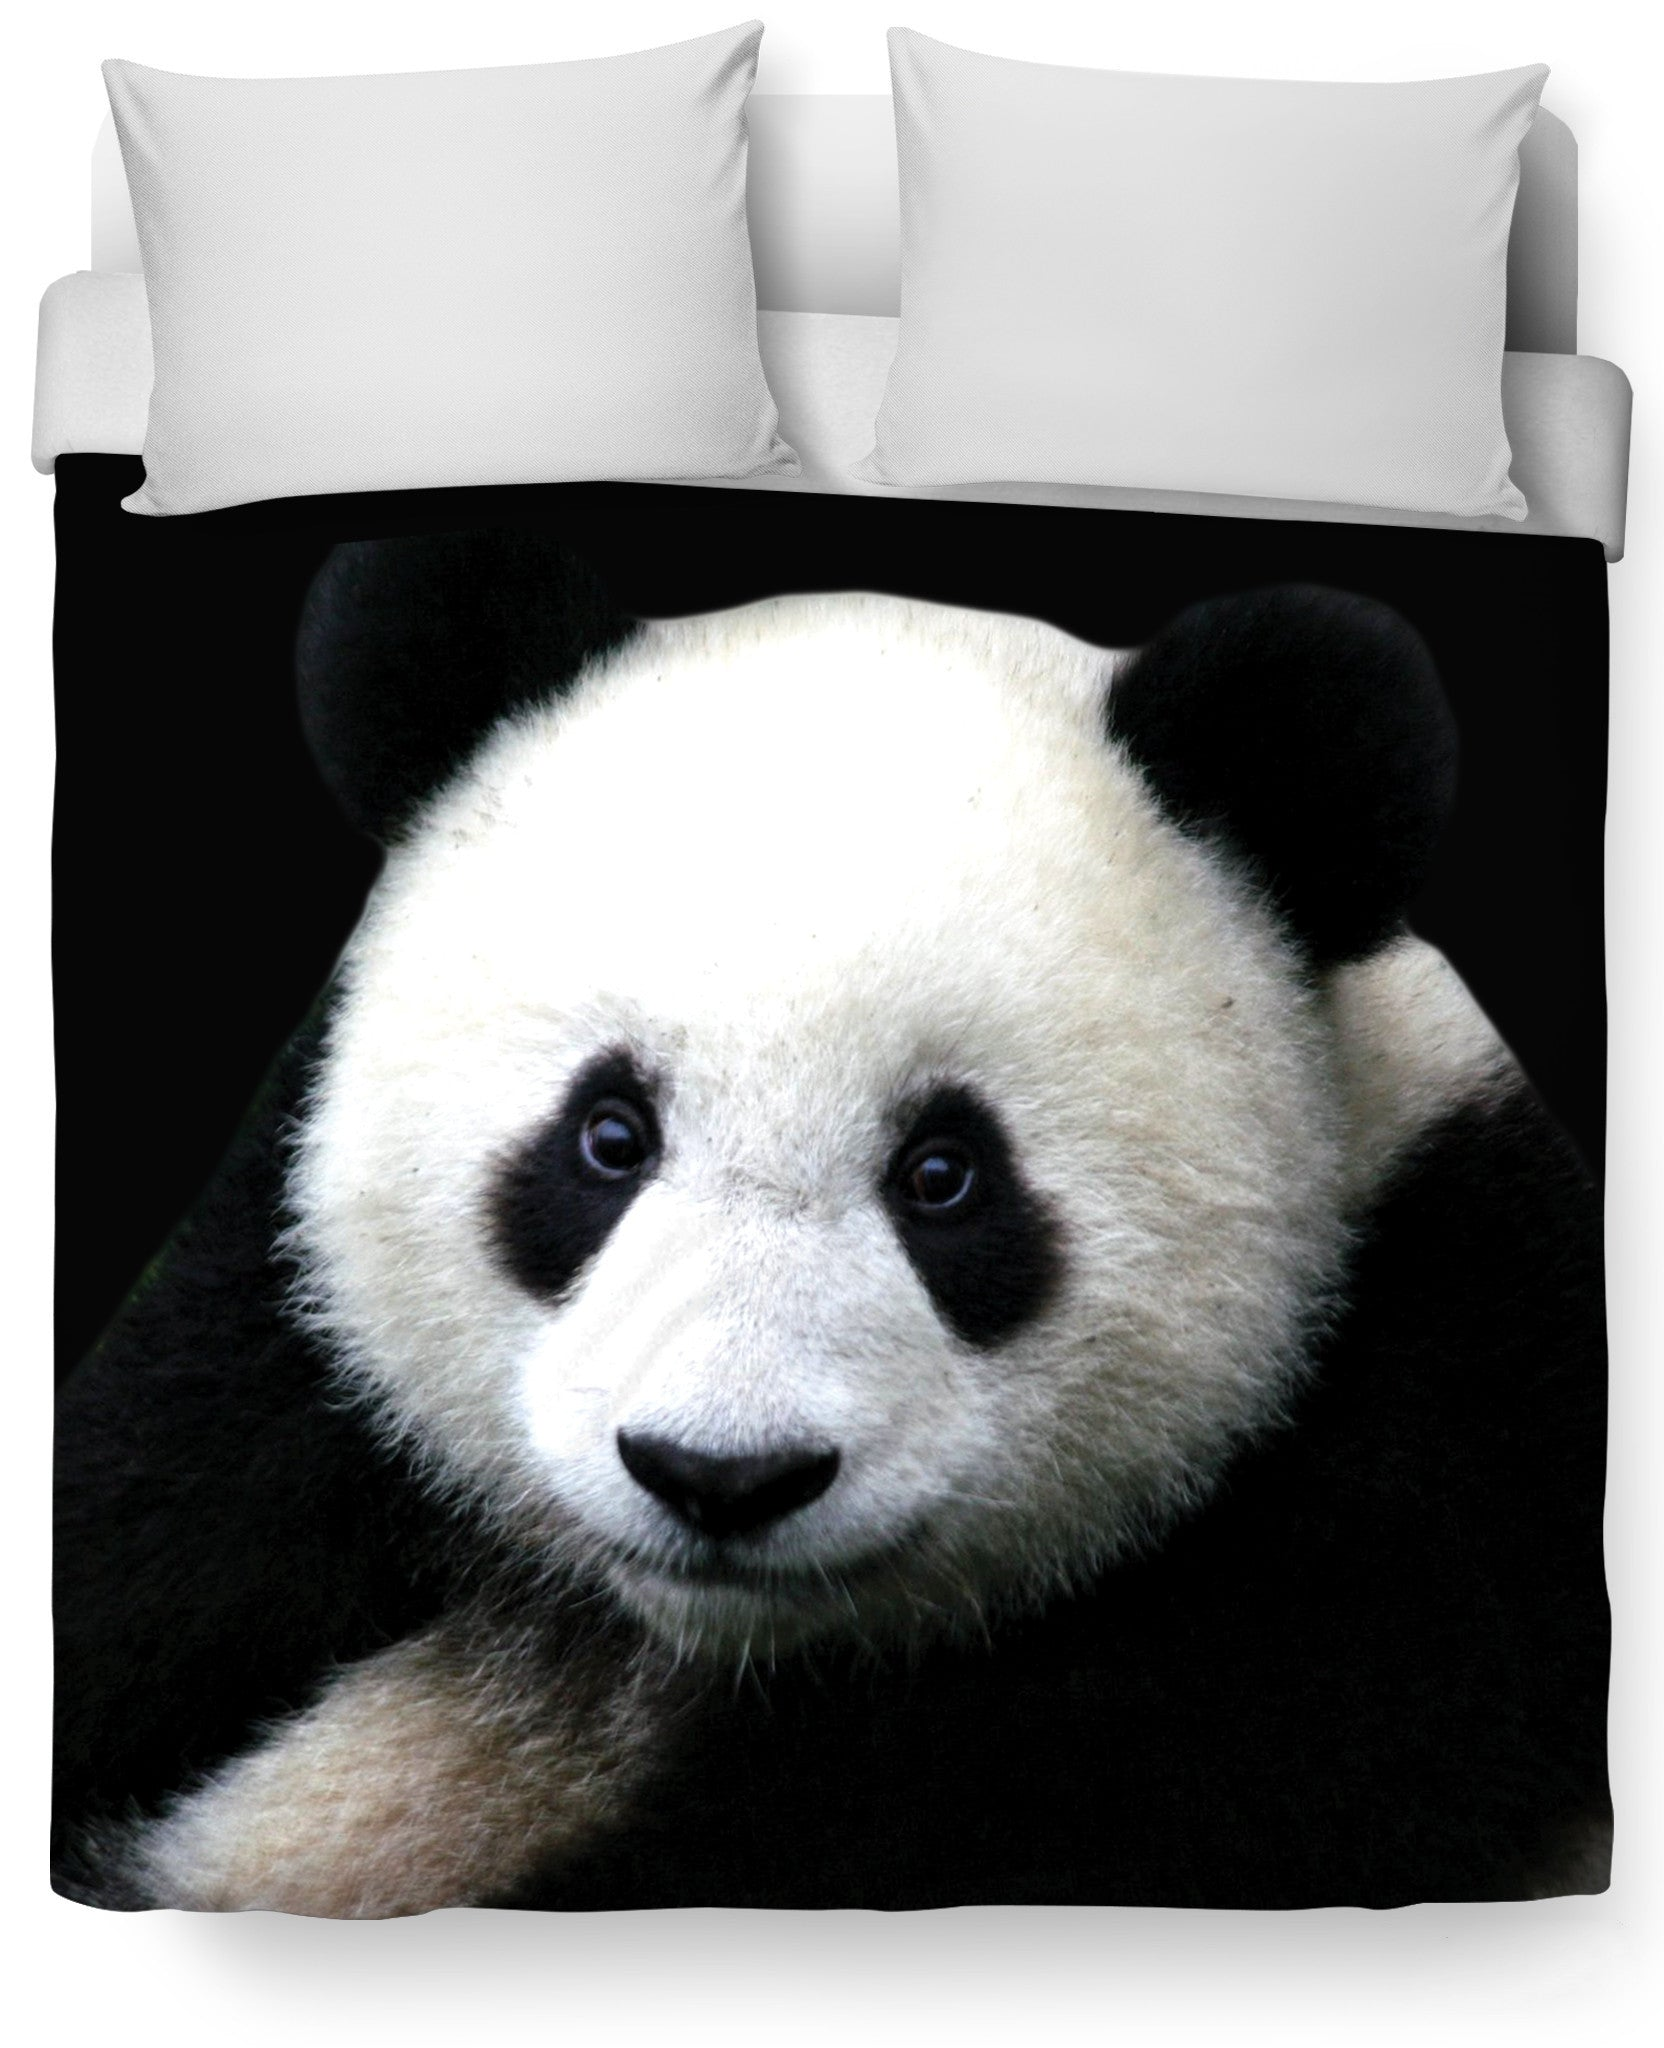 Panda Duvet Cover - TShirtsRUS.co